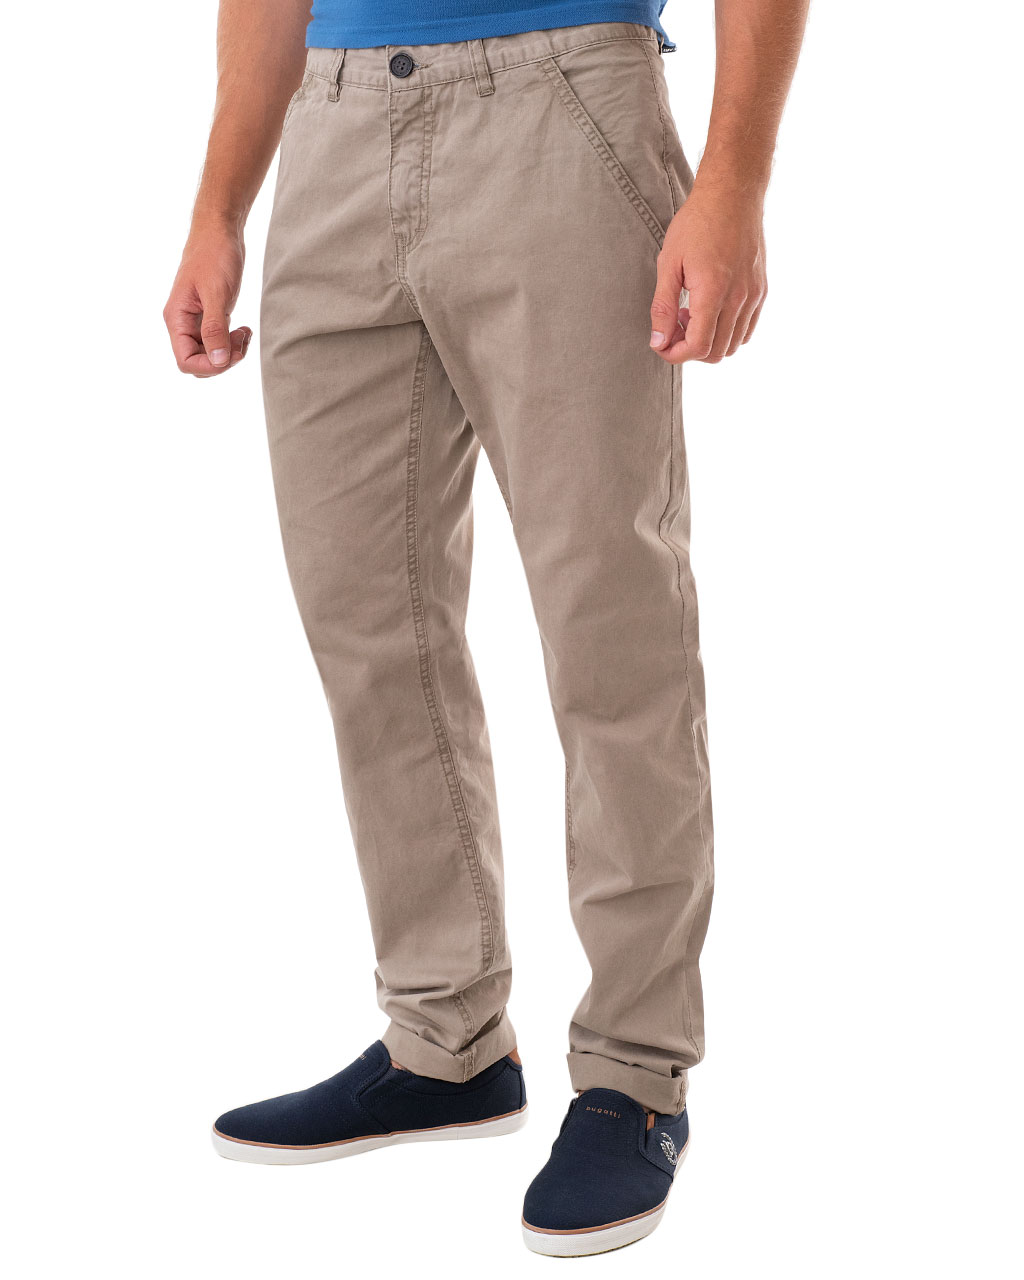 Men's trousers 123648/6                 (1)